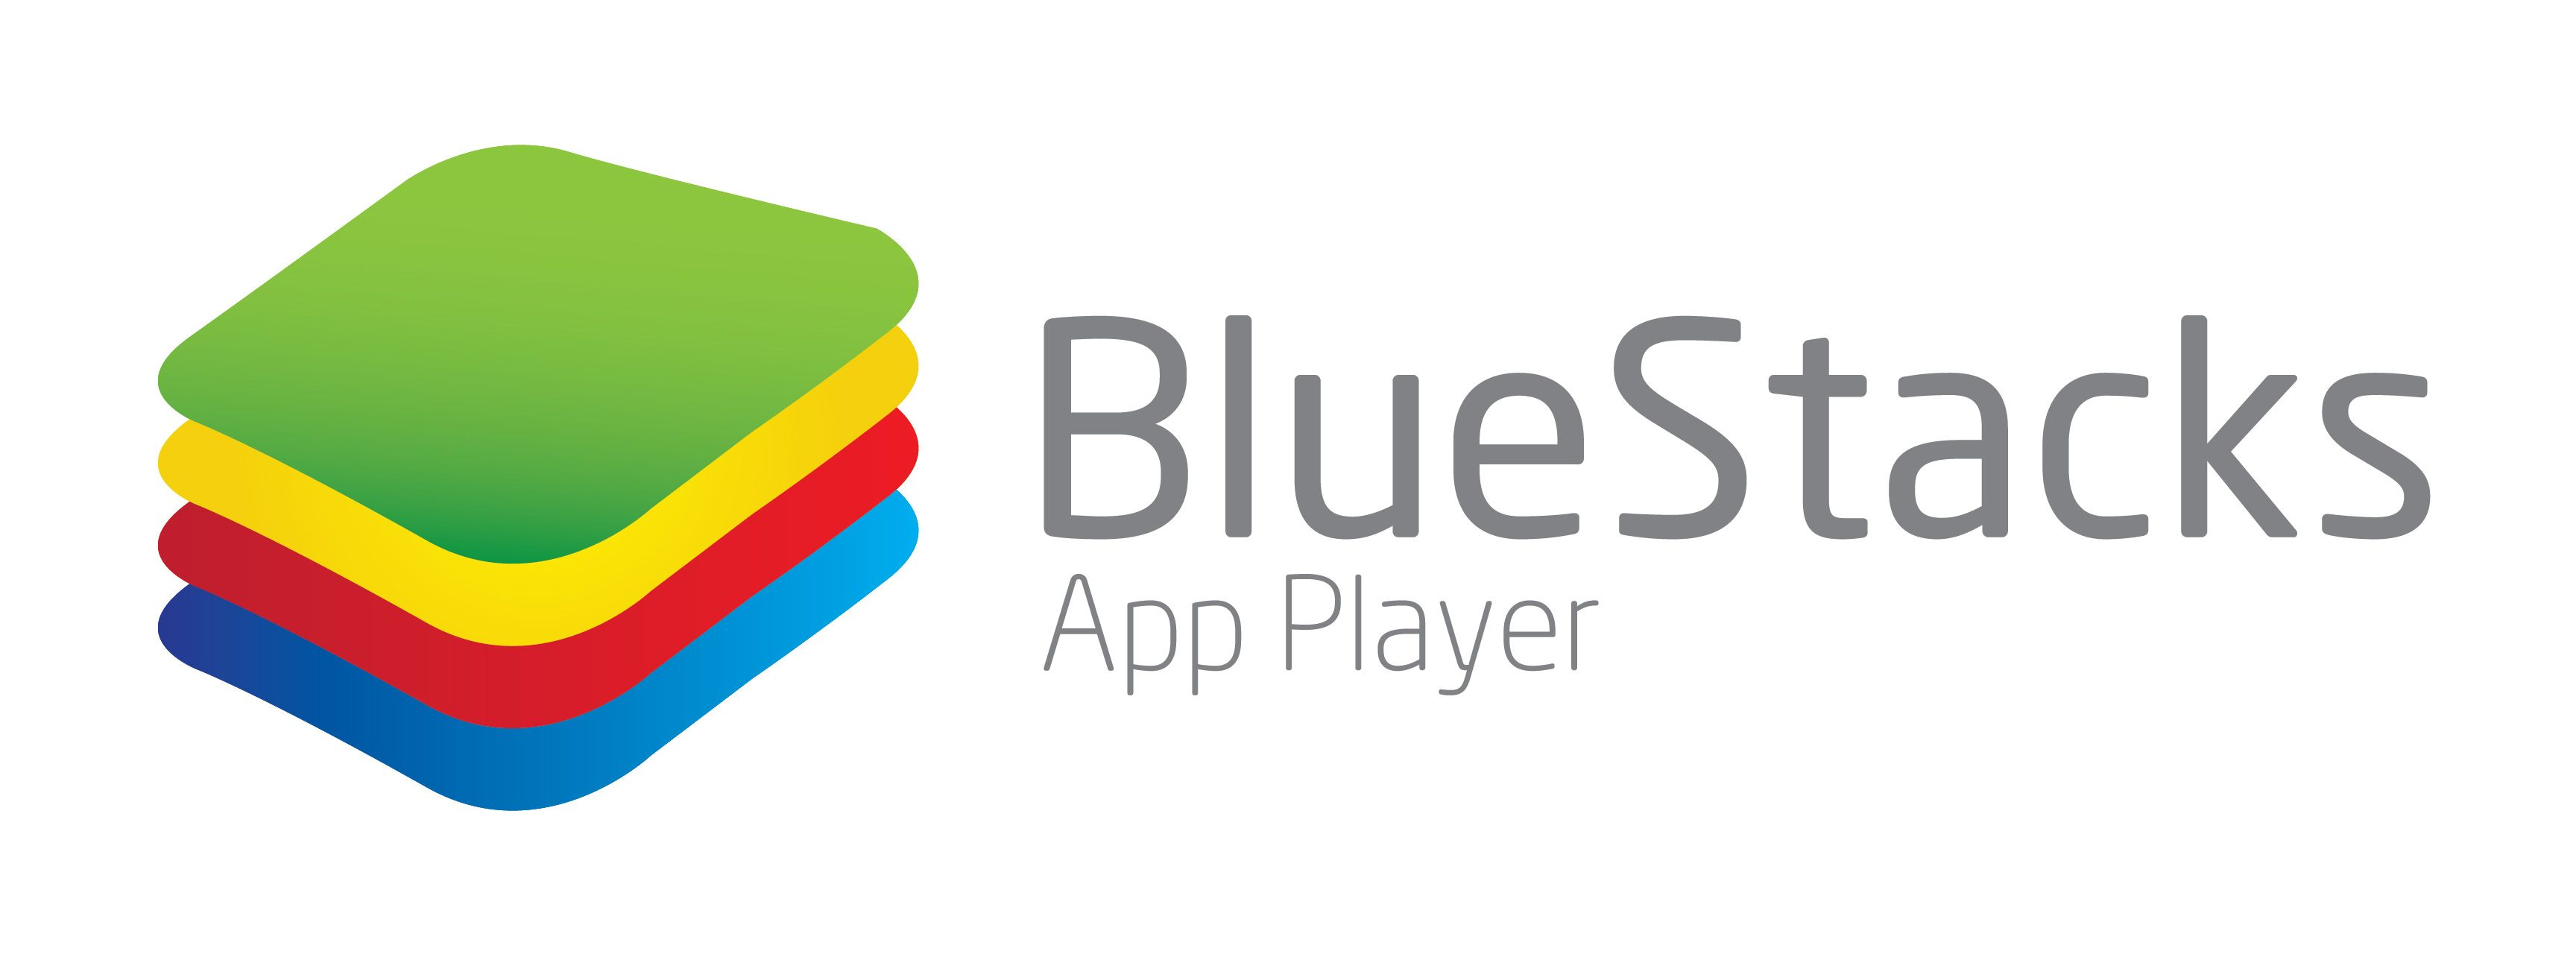 download bluestacks to play android games on pc